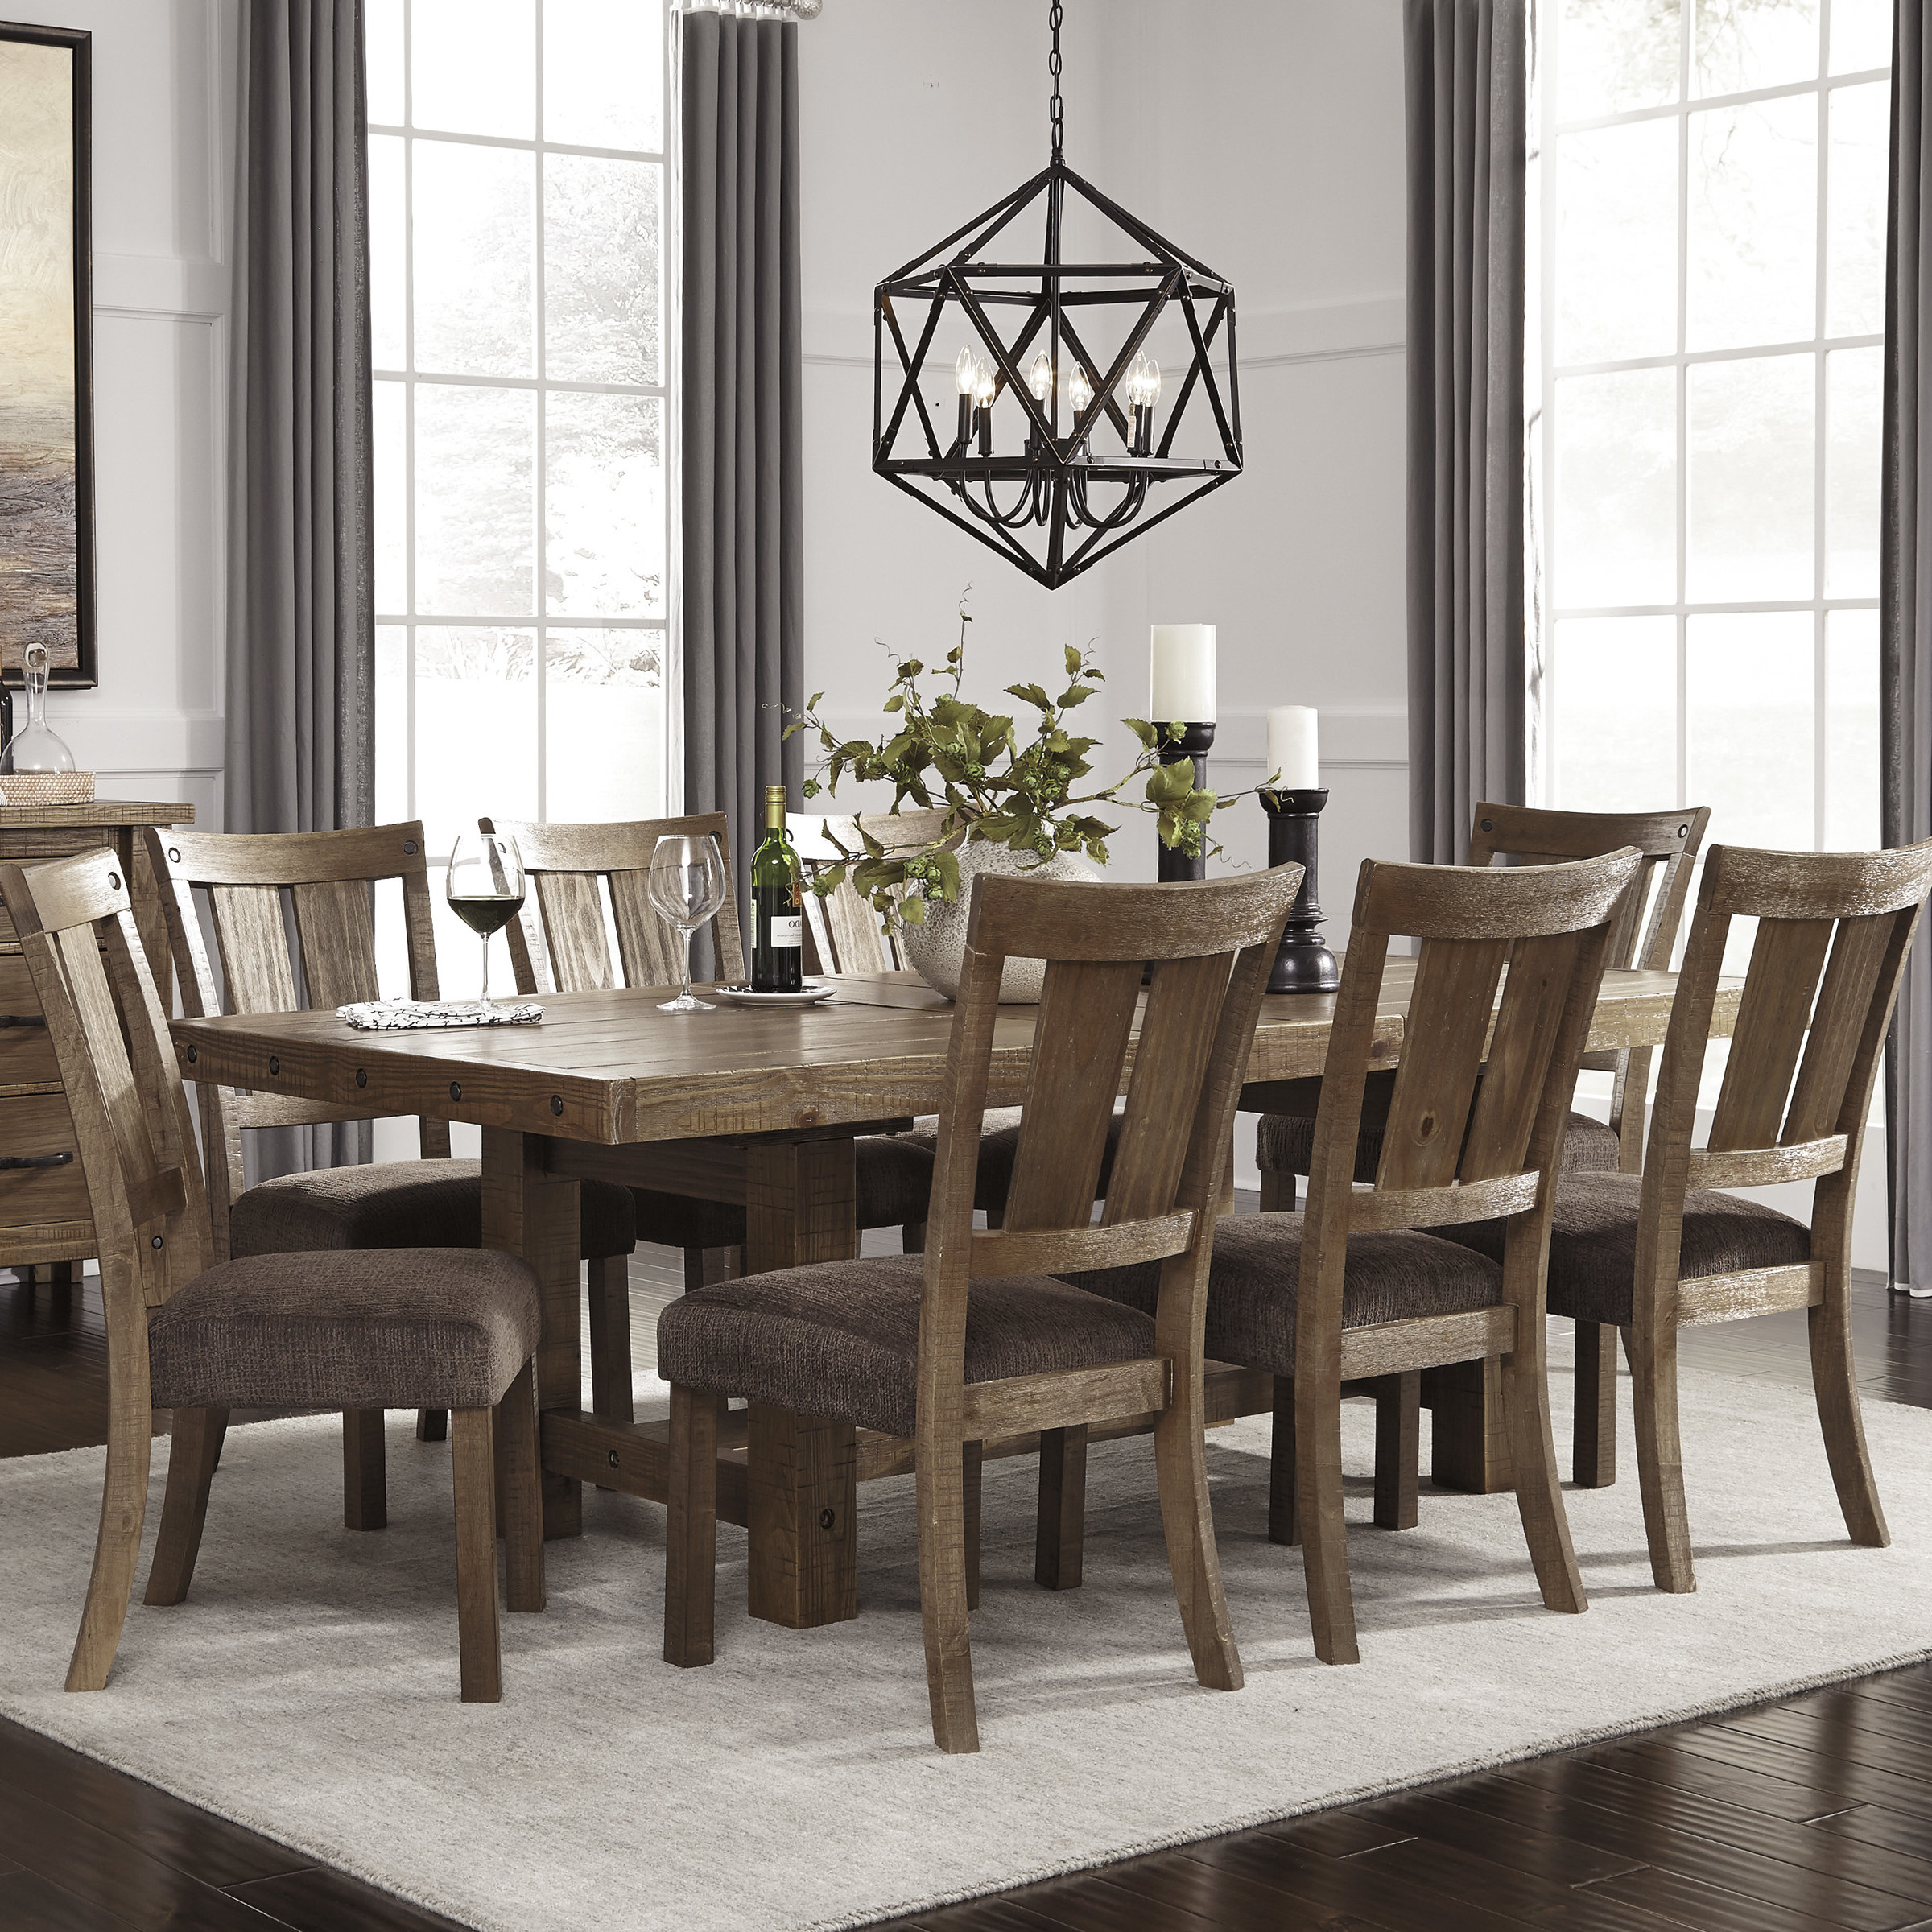 Newest North Reading 5 Piece Dining Table Sets pertaining to Kitchen & Dining Room Sets You'll Love